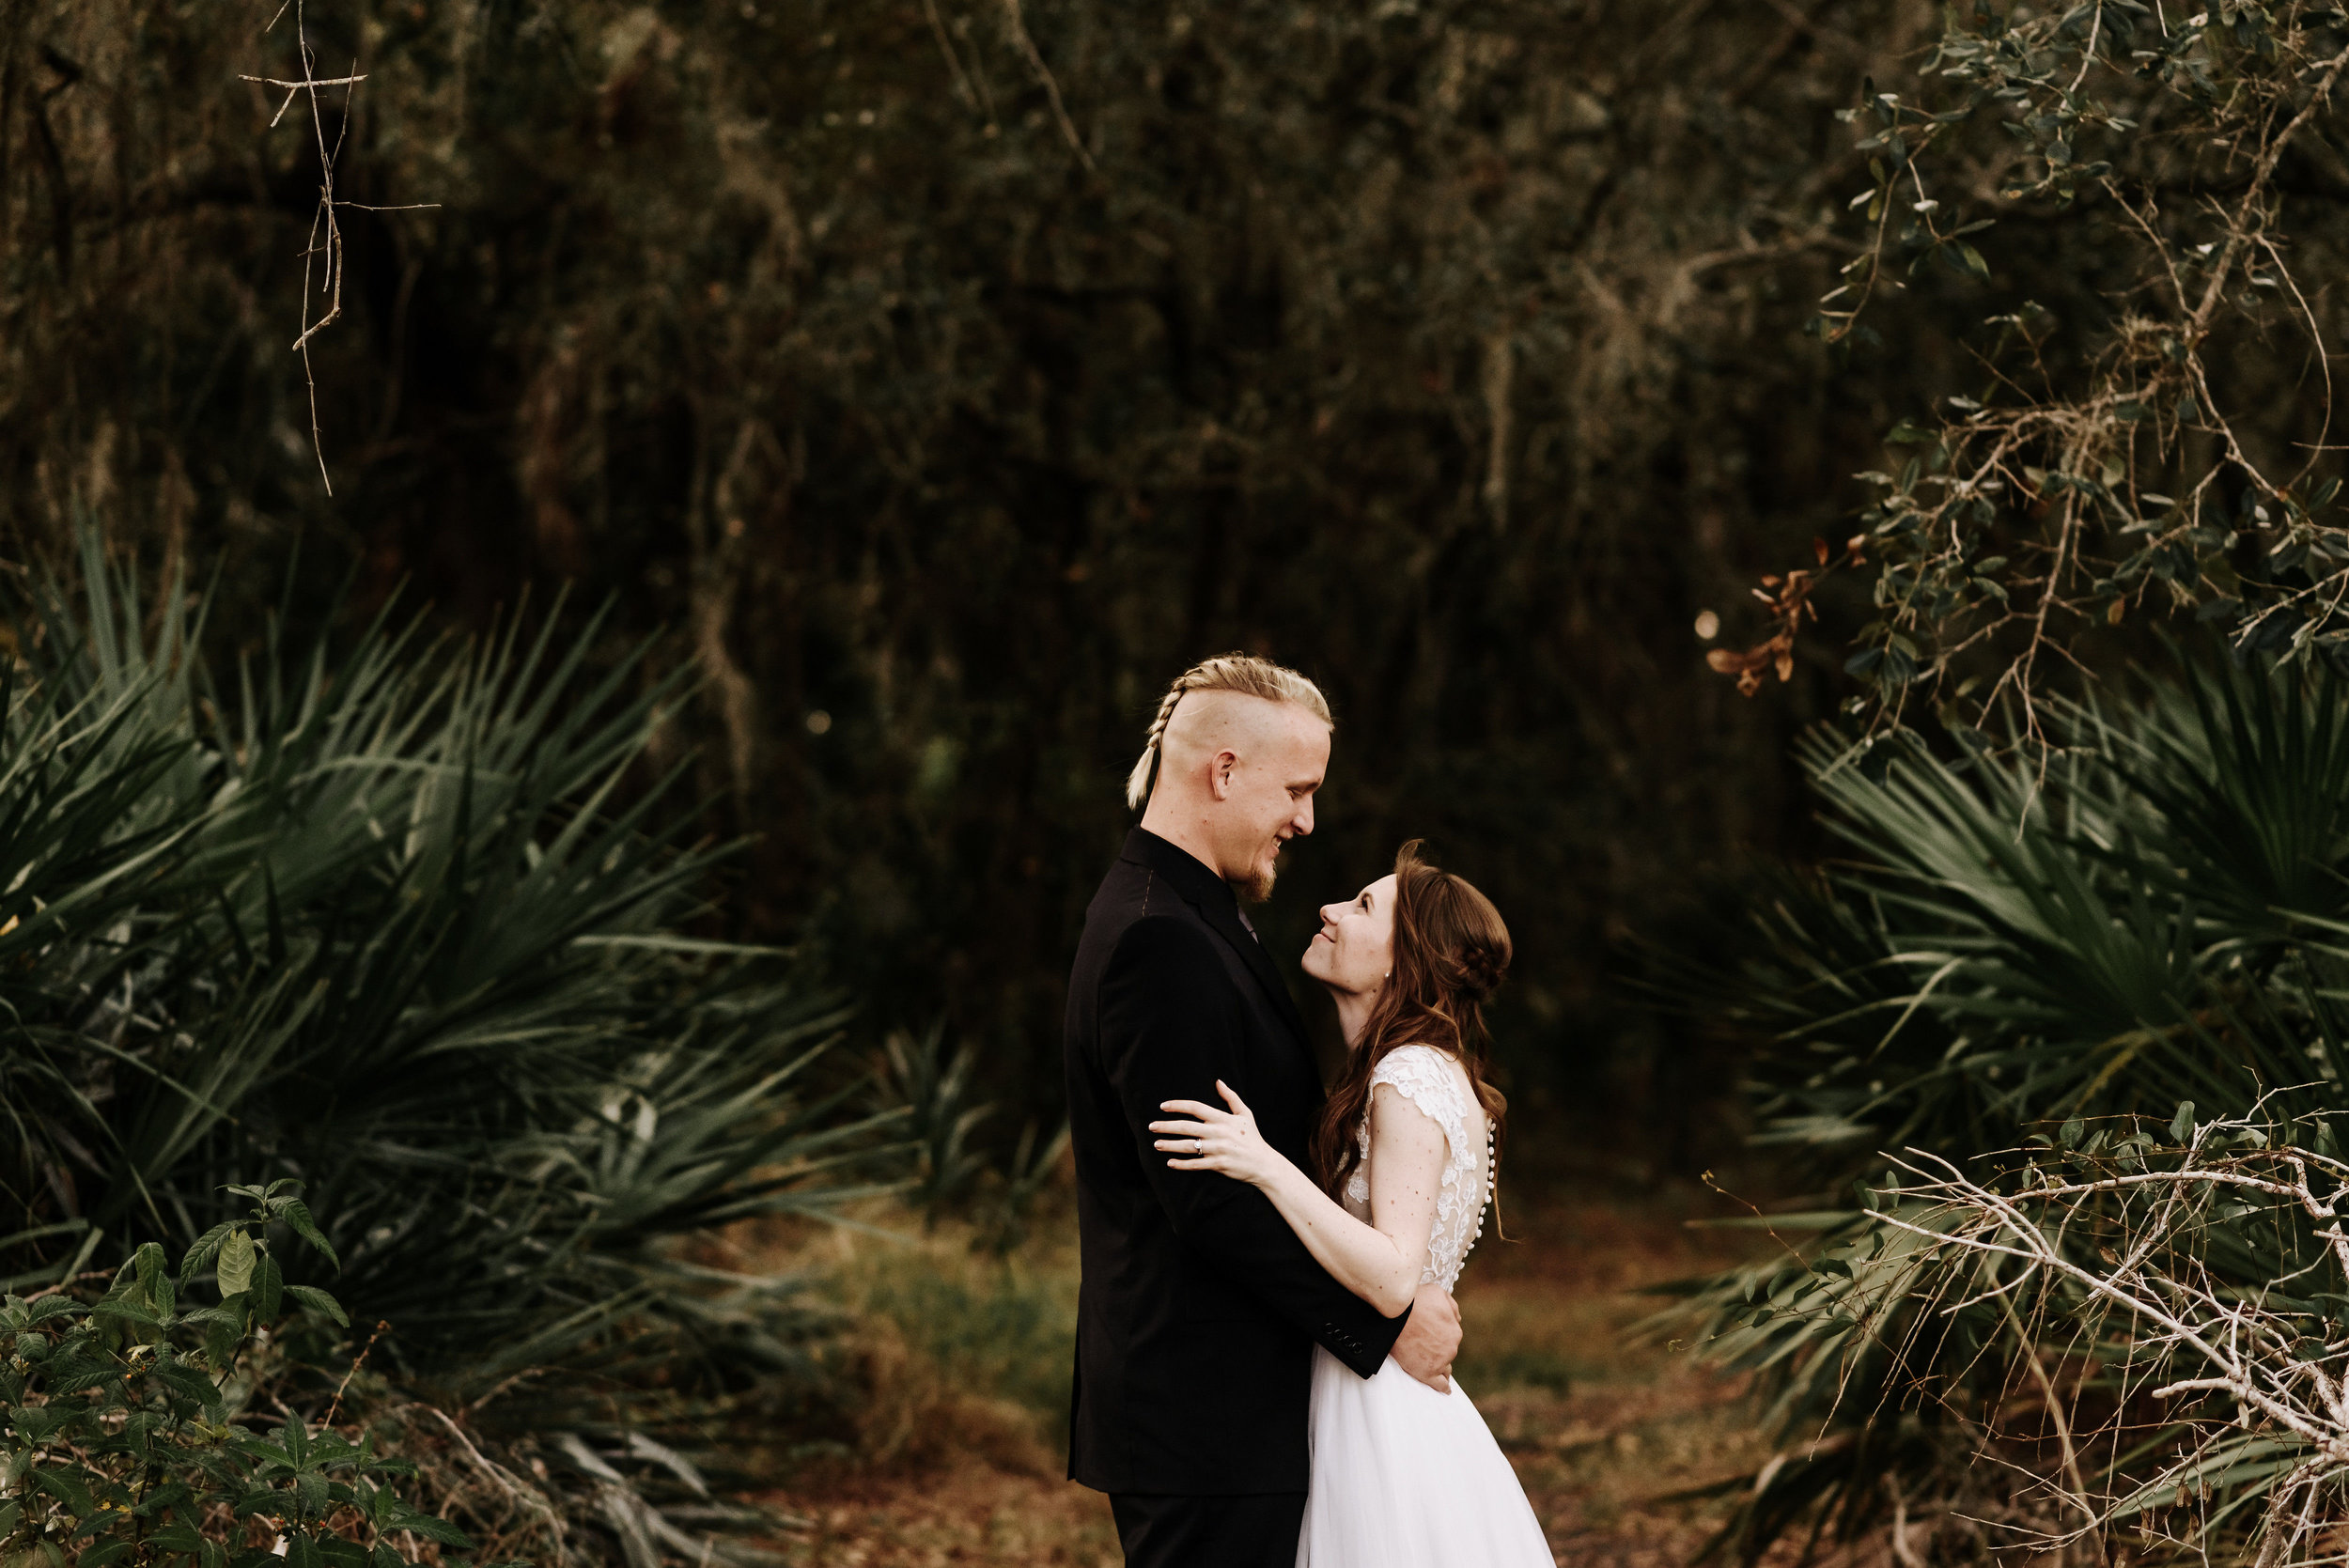 Jess_Micah_Portrait_Session_Wedding_Vero_Beach_Florida_Photography_by_V_0337.jpg